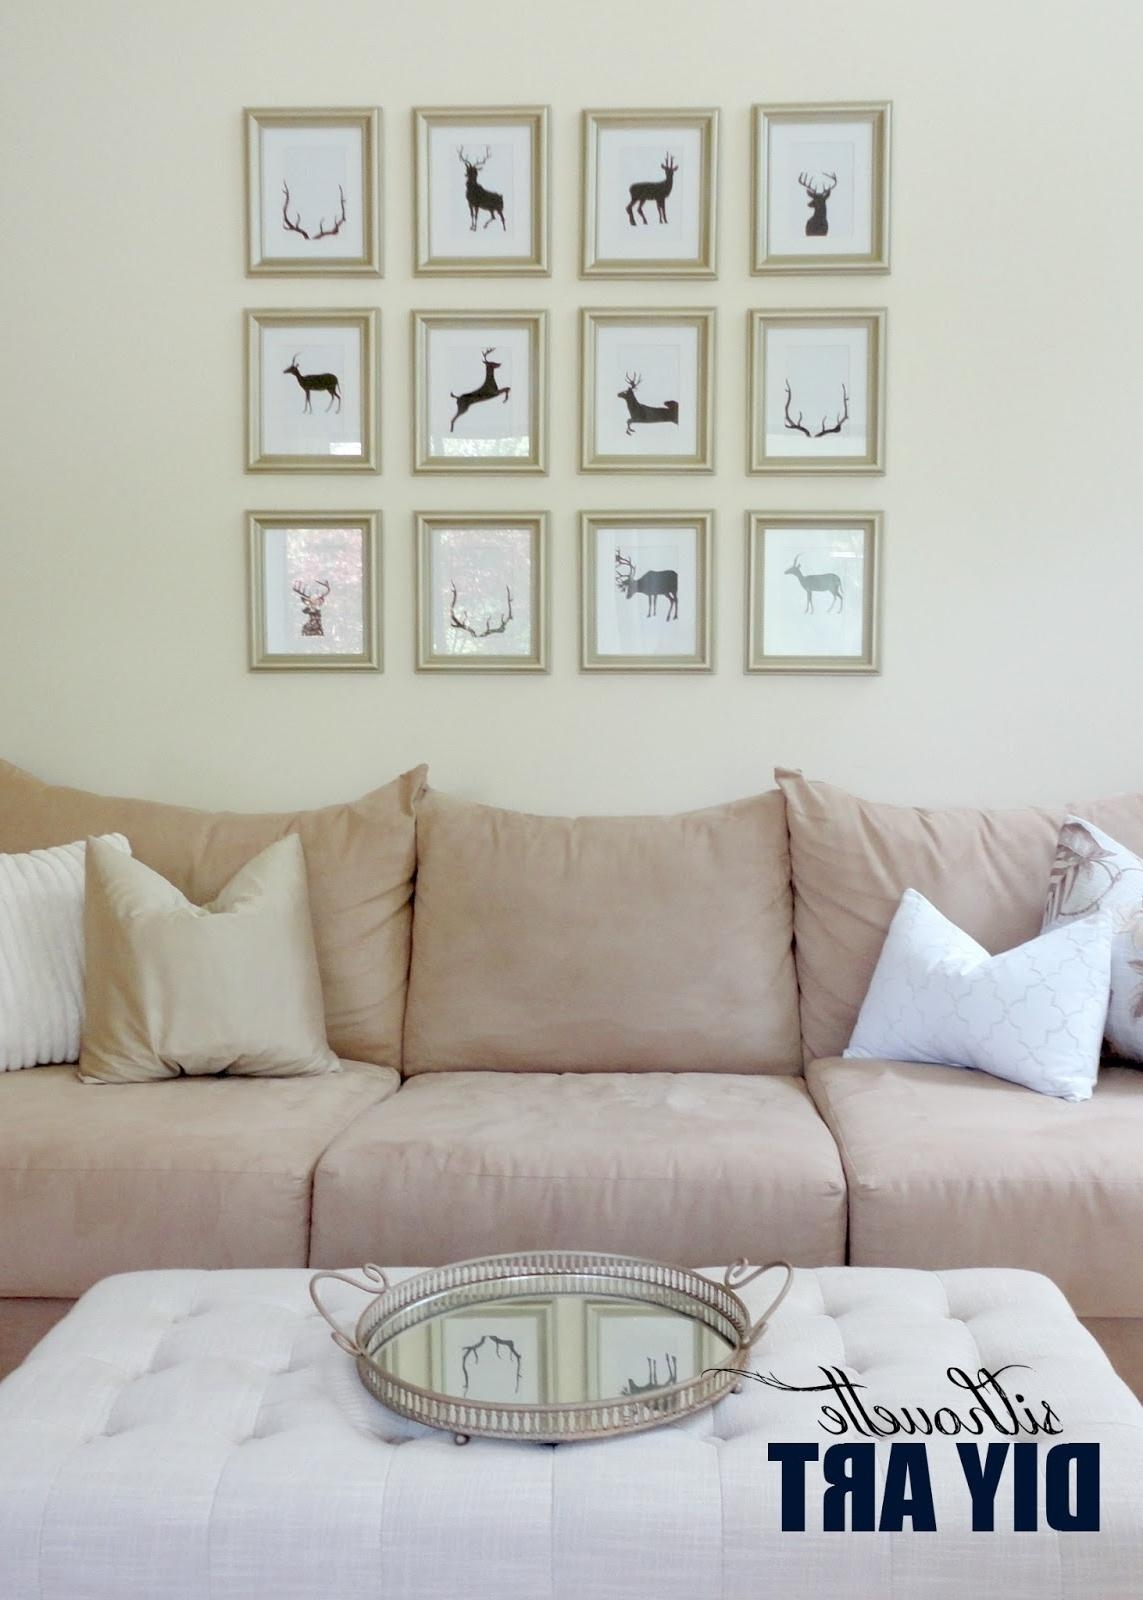 Home Design : 79 Breathtaking Large White Wall Clocks With Large White Wall Art (View 13 of 21)